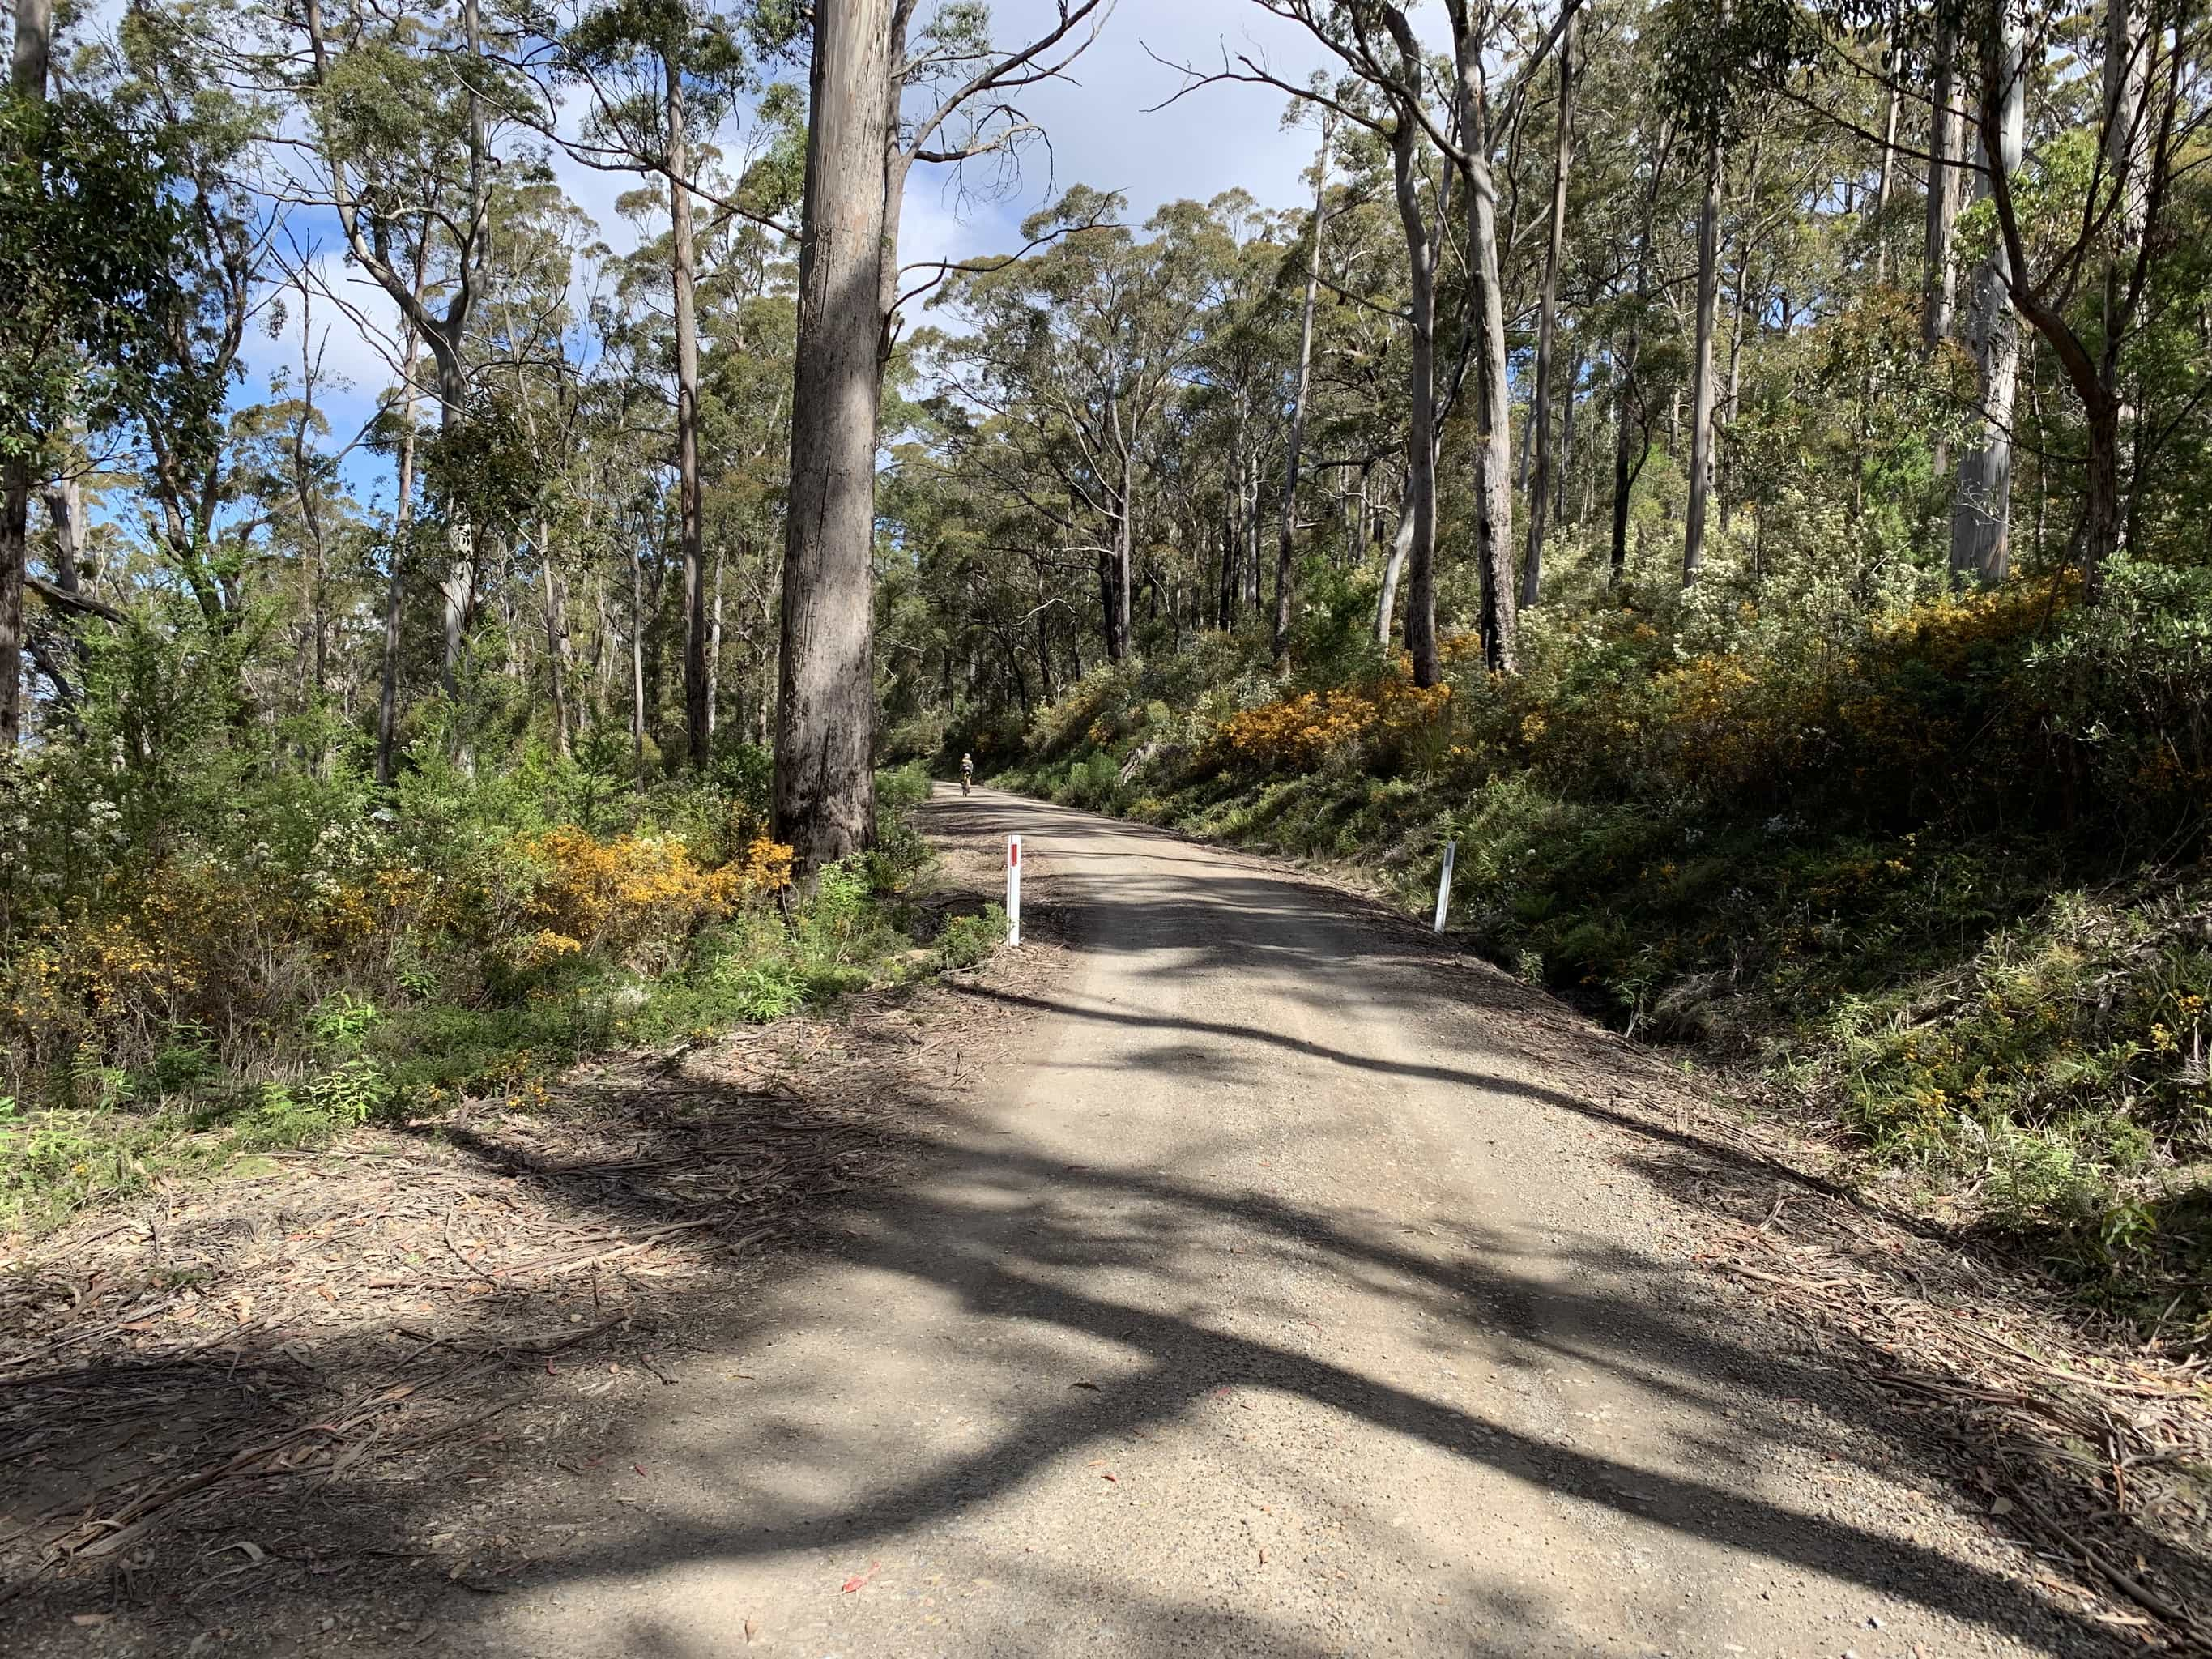 Gravel road high on ridge with big trees and plants in bloom.